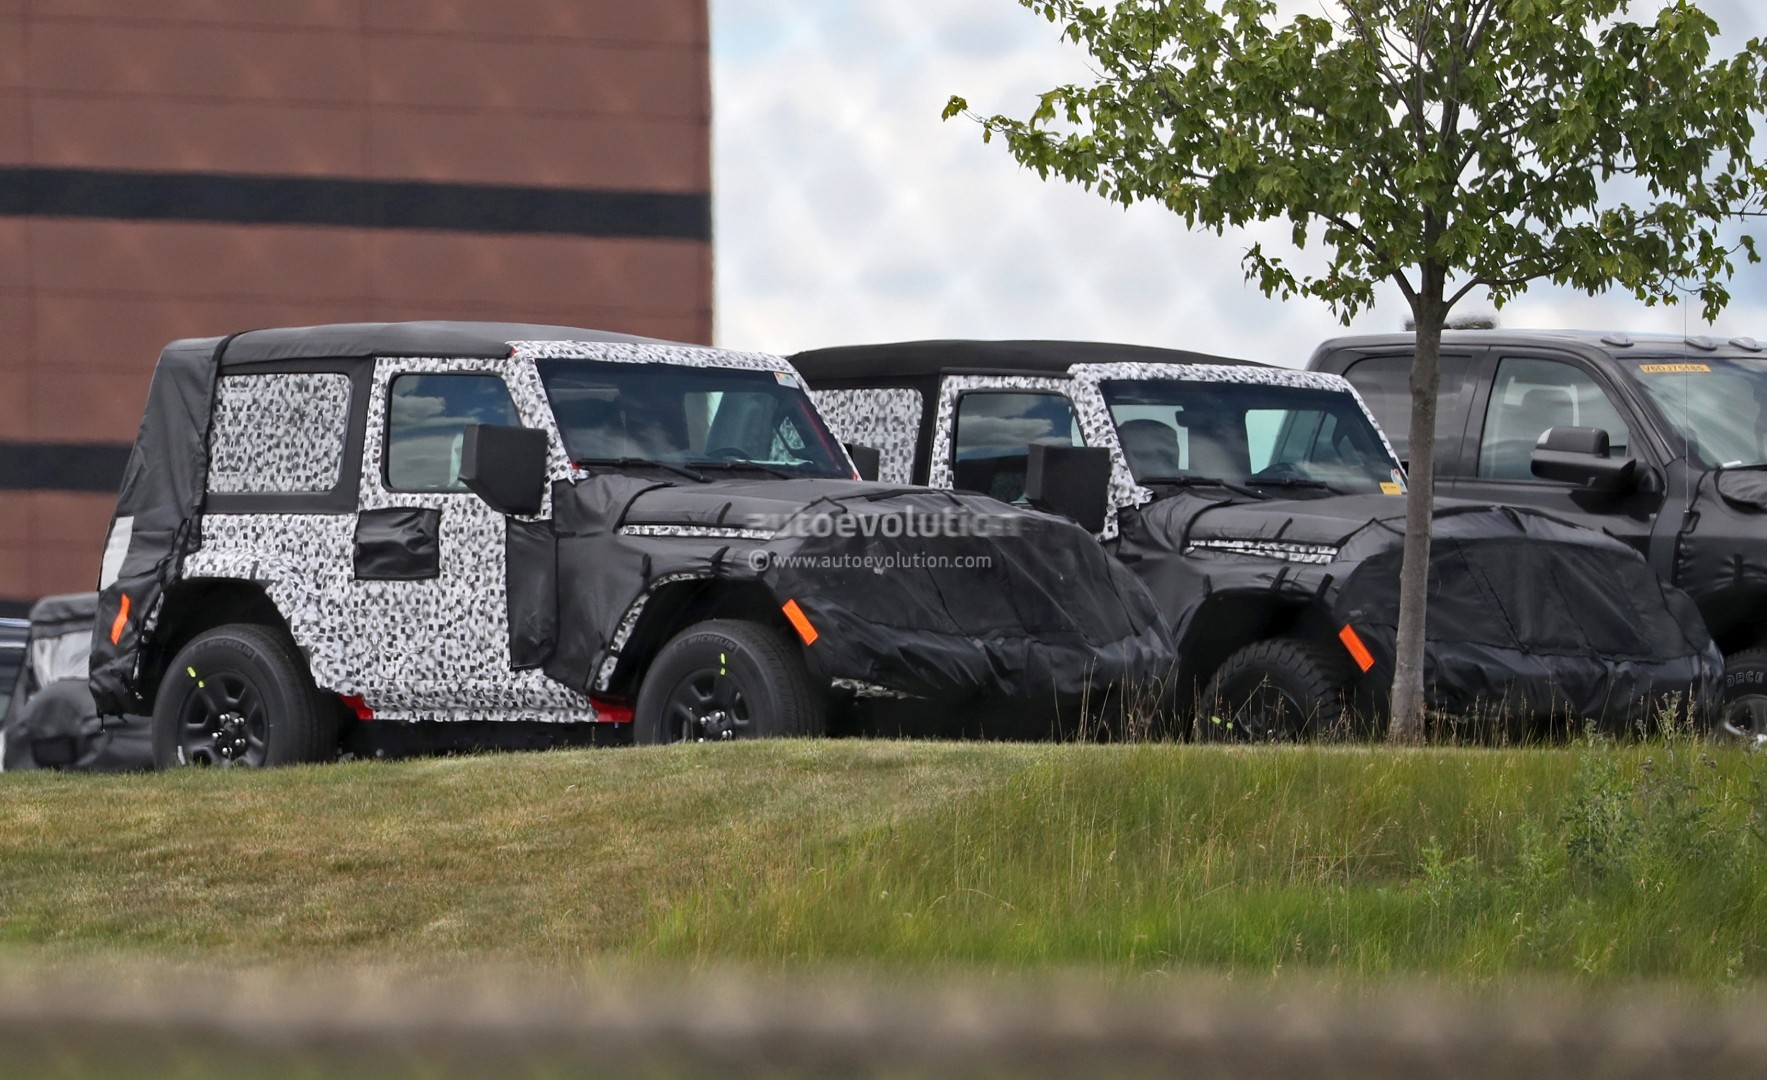 2018 Wrangler Jl Getting New Selec Trac 4wd System According To Jeep Leaking Roof Two Door Spied